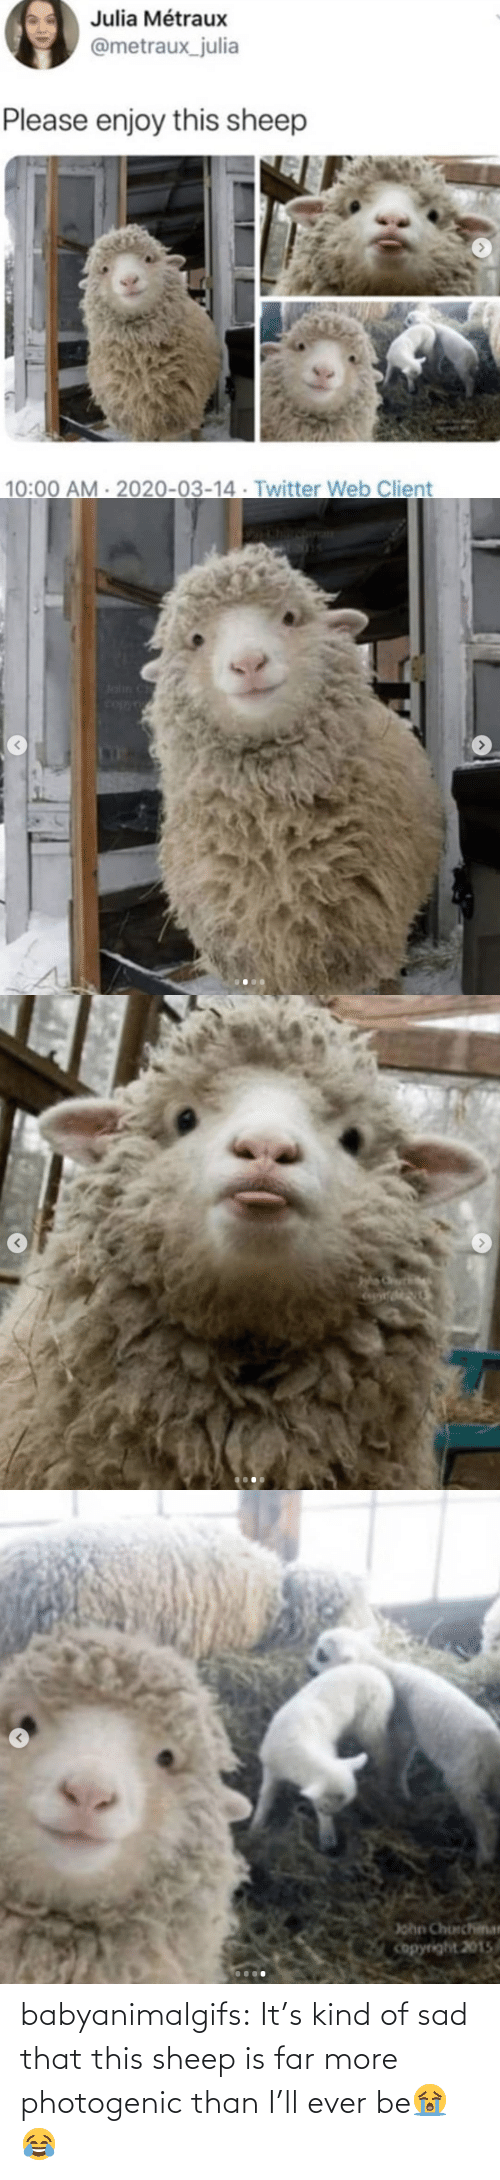 Target, Tumblr, and Blog: babyanimalgifs:  It's kind of sad that this sheep is far more photogenic than I'll ever be😭😂